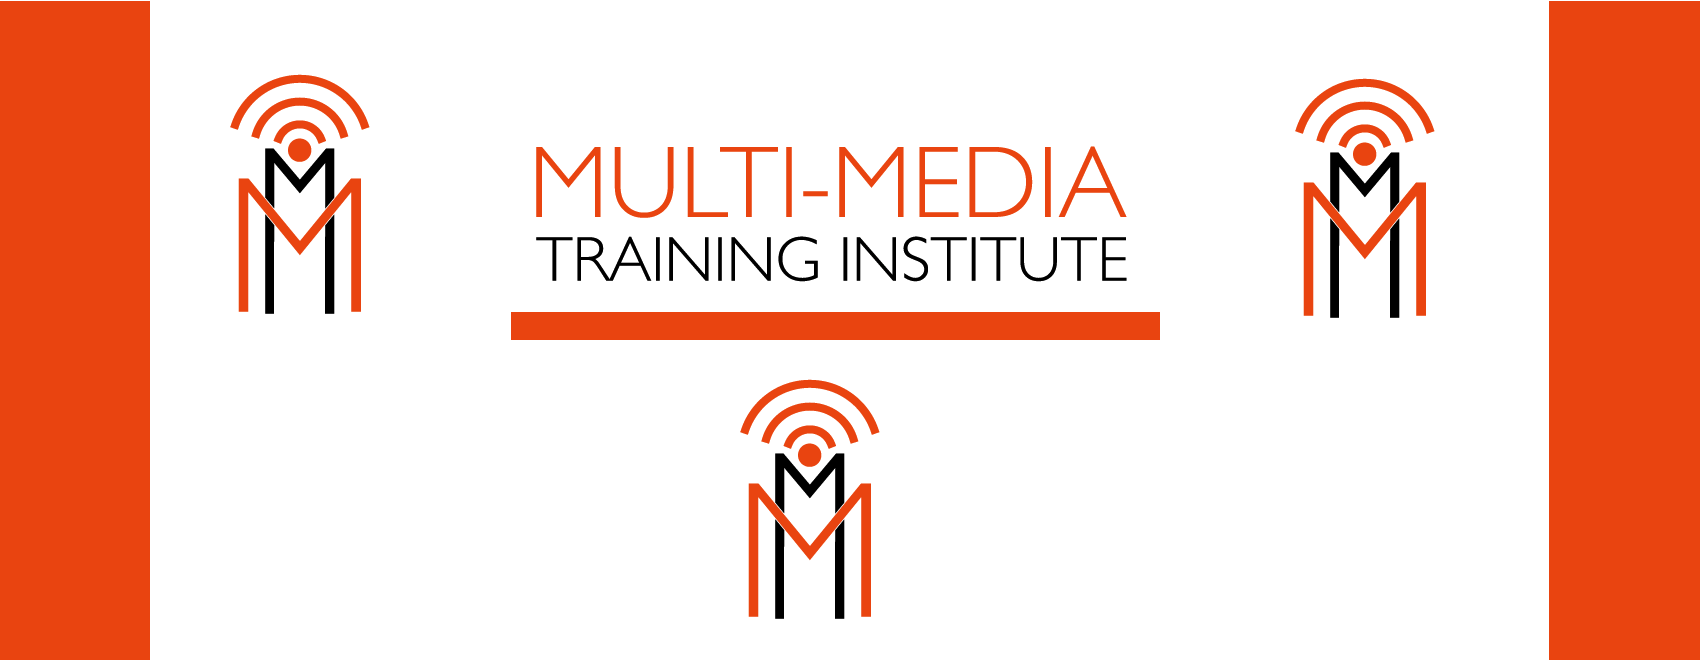 Welcome to Multi-Media Training Institute (MMTI) a DC-based, non-profit organization training youth in the technical areas of video, web and theater production.